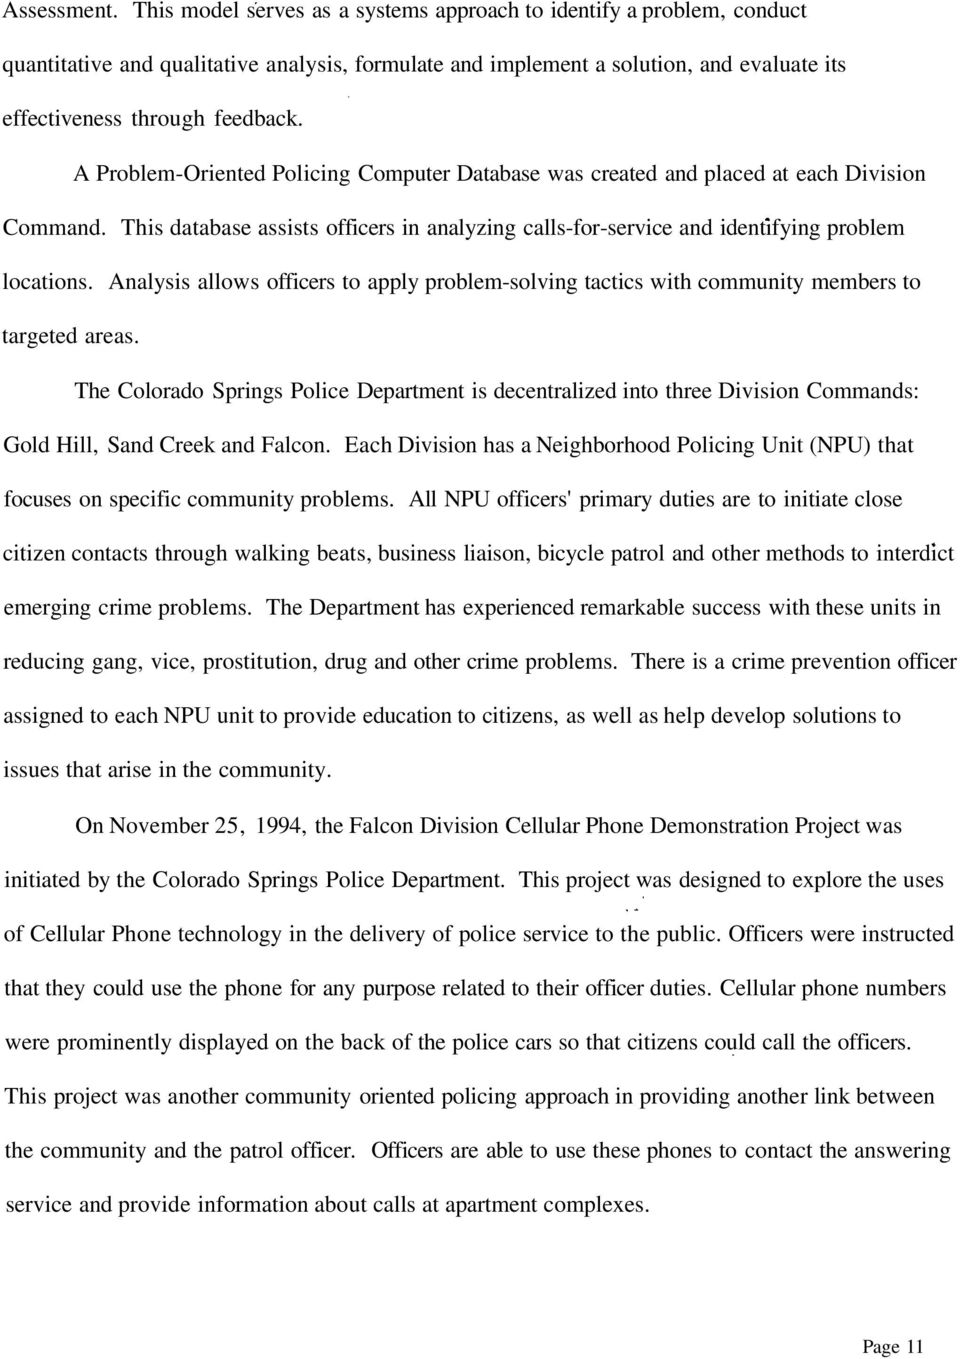 A Problem-Oriented Policing Computer Database was created and placed at each Division Command. This database assists officers in analyzing calls-for-service and identifying problem locations.